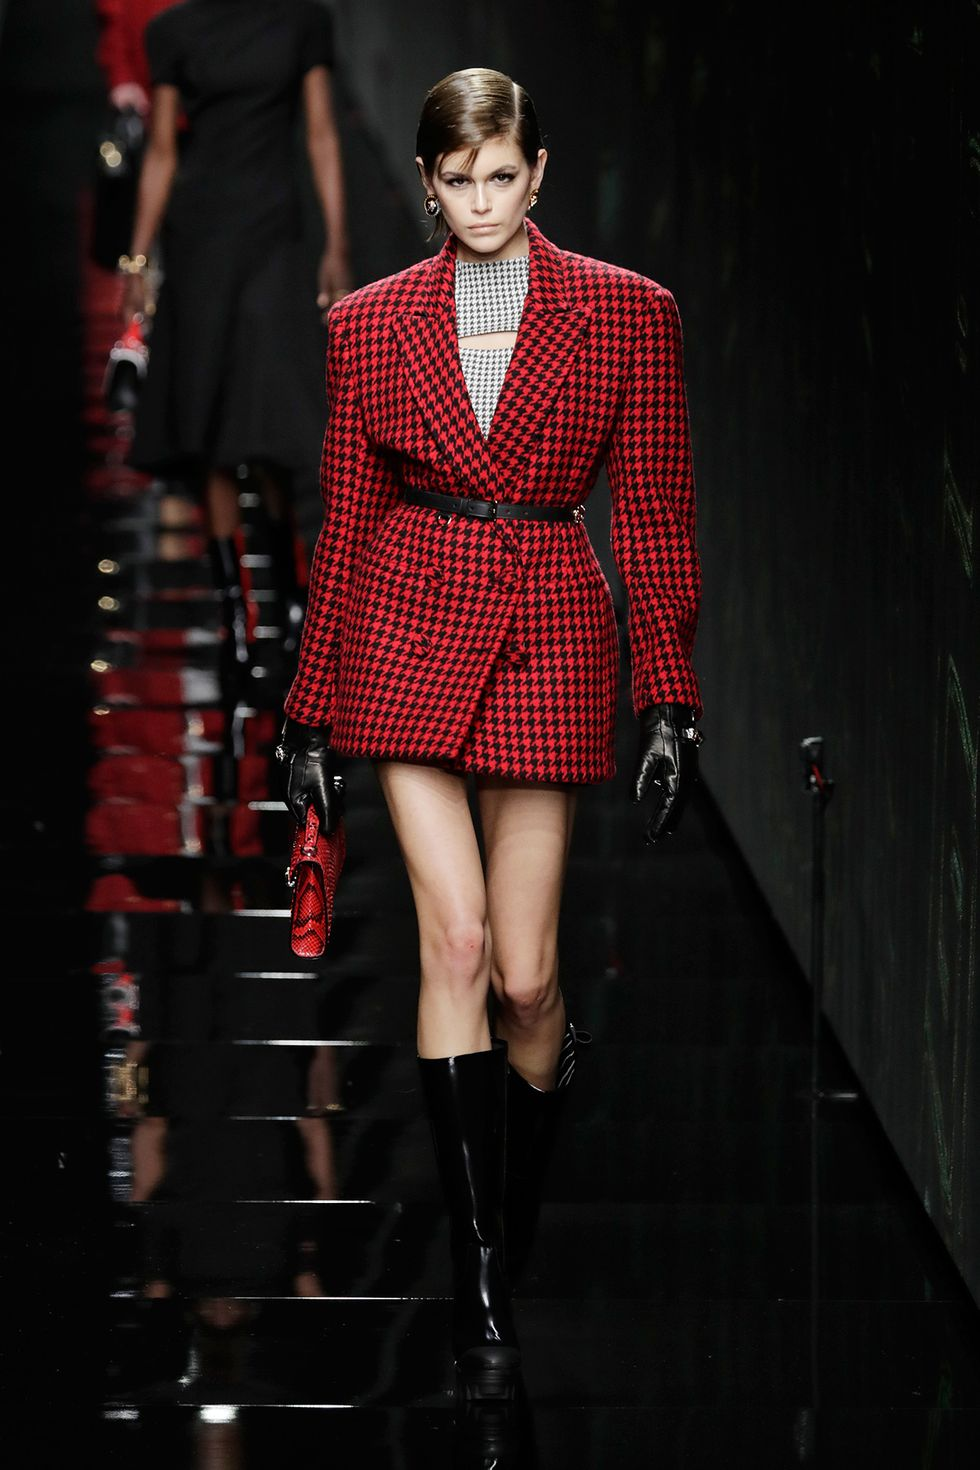 The Best Looks of Milan Fashion Week 2020 milan fashion week 2020 The Best Looks of Milan Fashion Week 2020 versace fall 2020 runway kaia gerber houndstooth jacket 1582320911